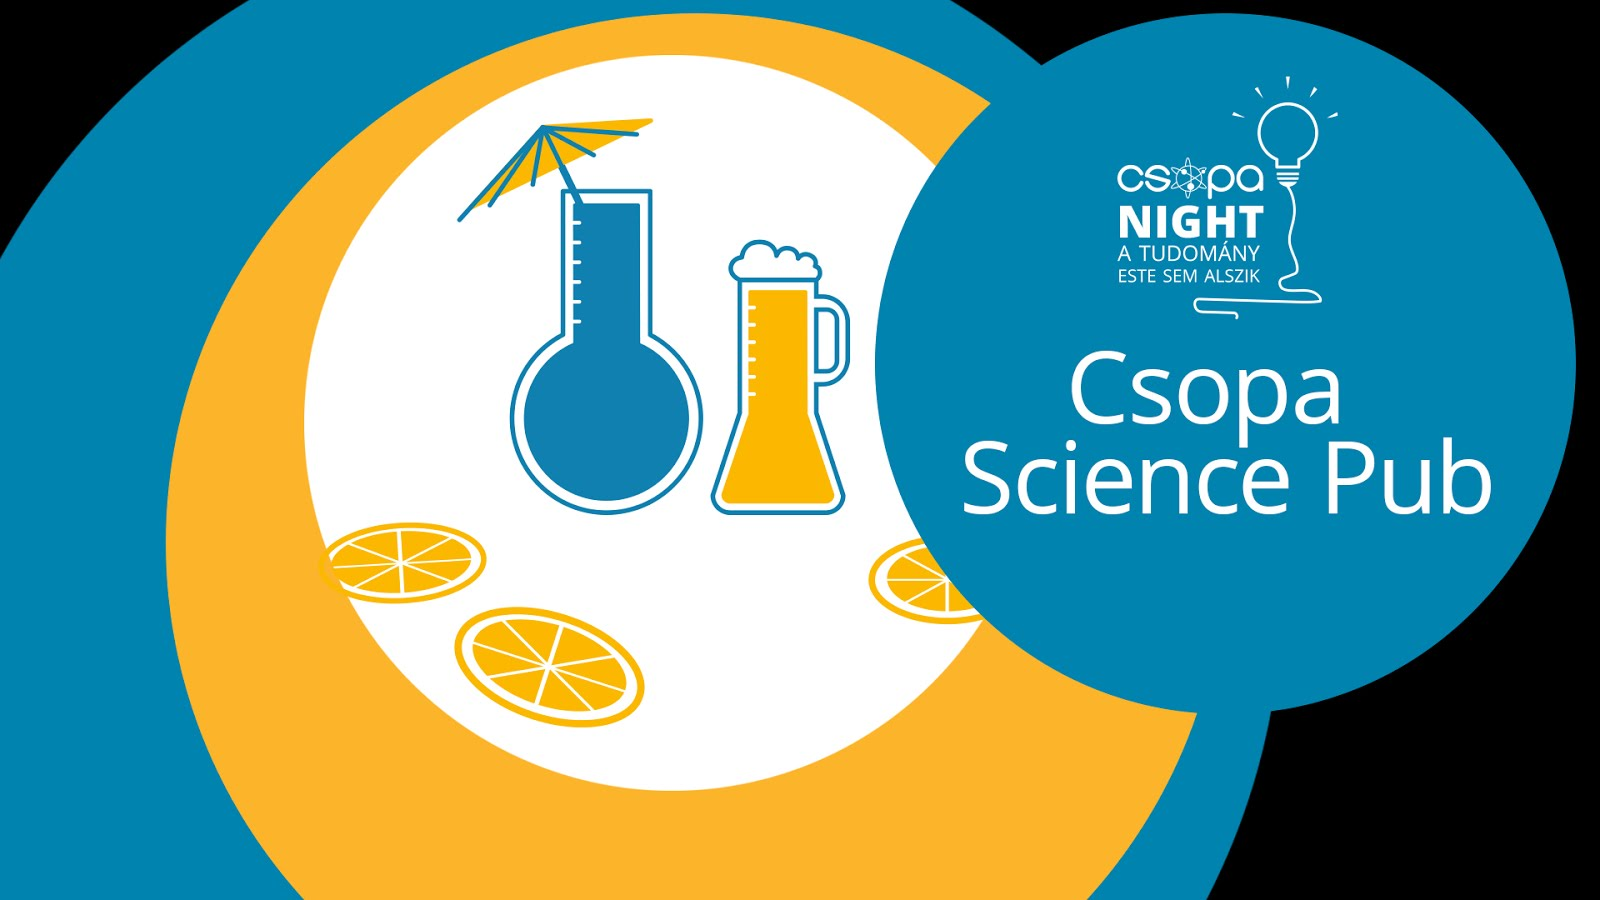 Csopa Science Pub